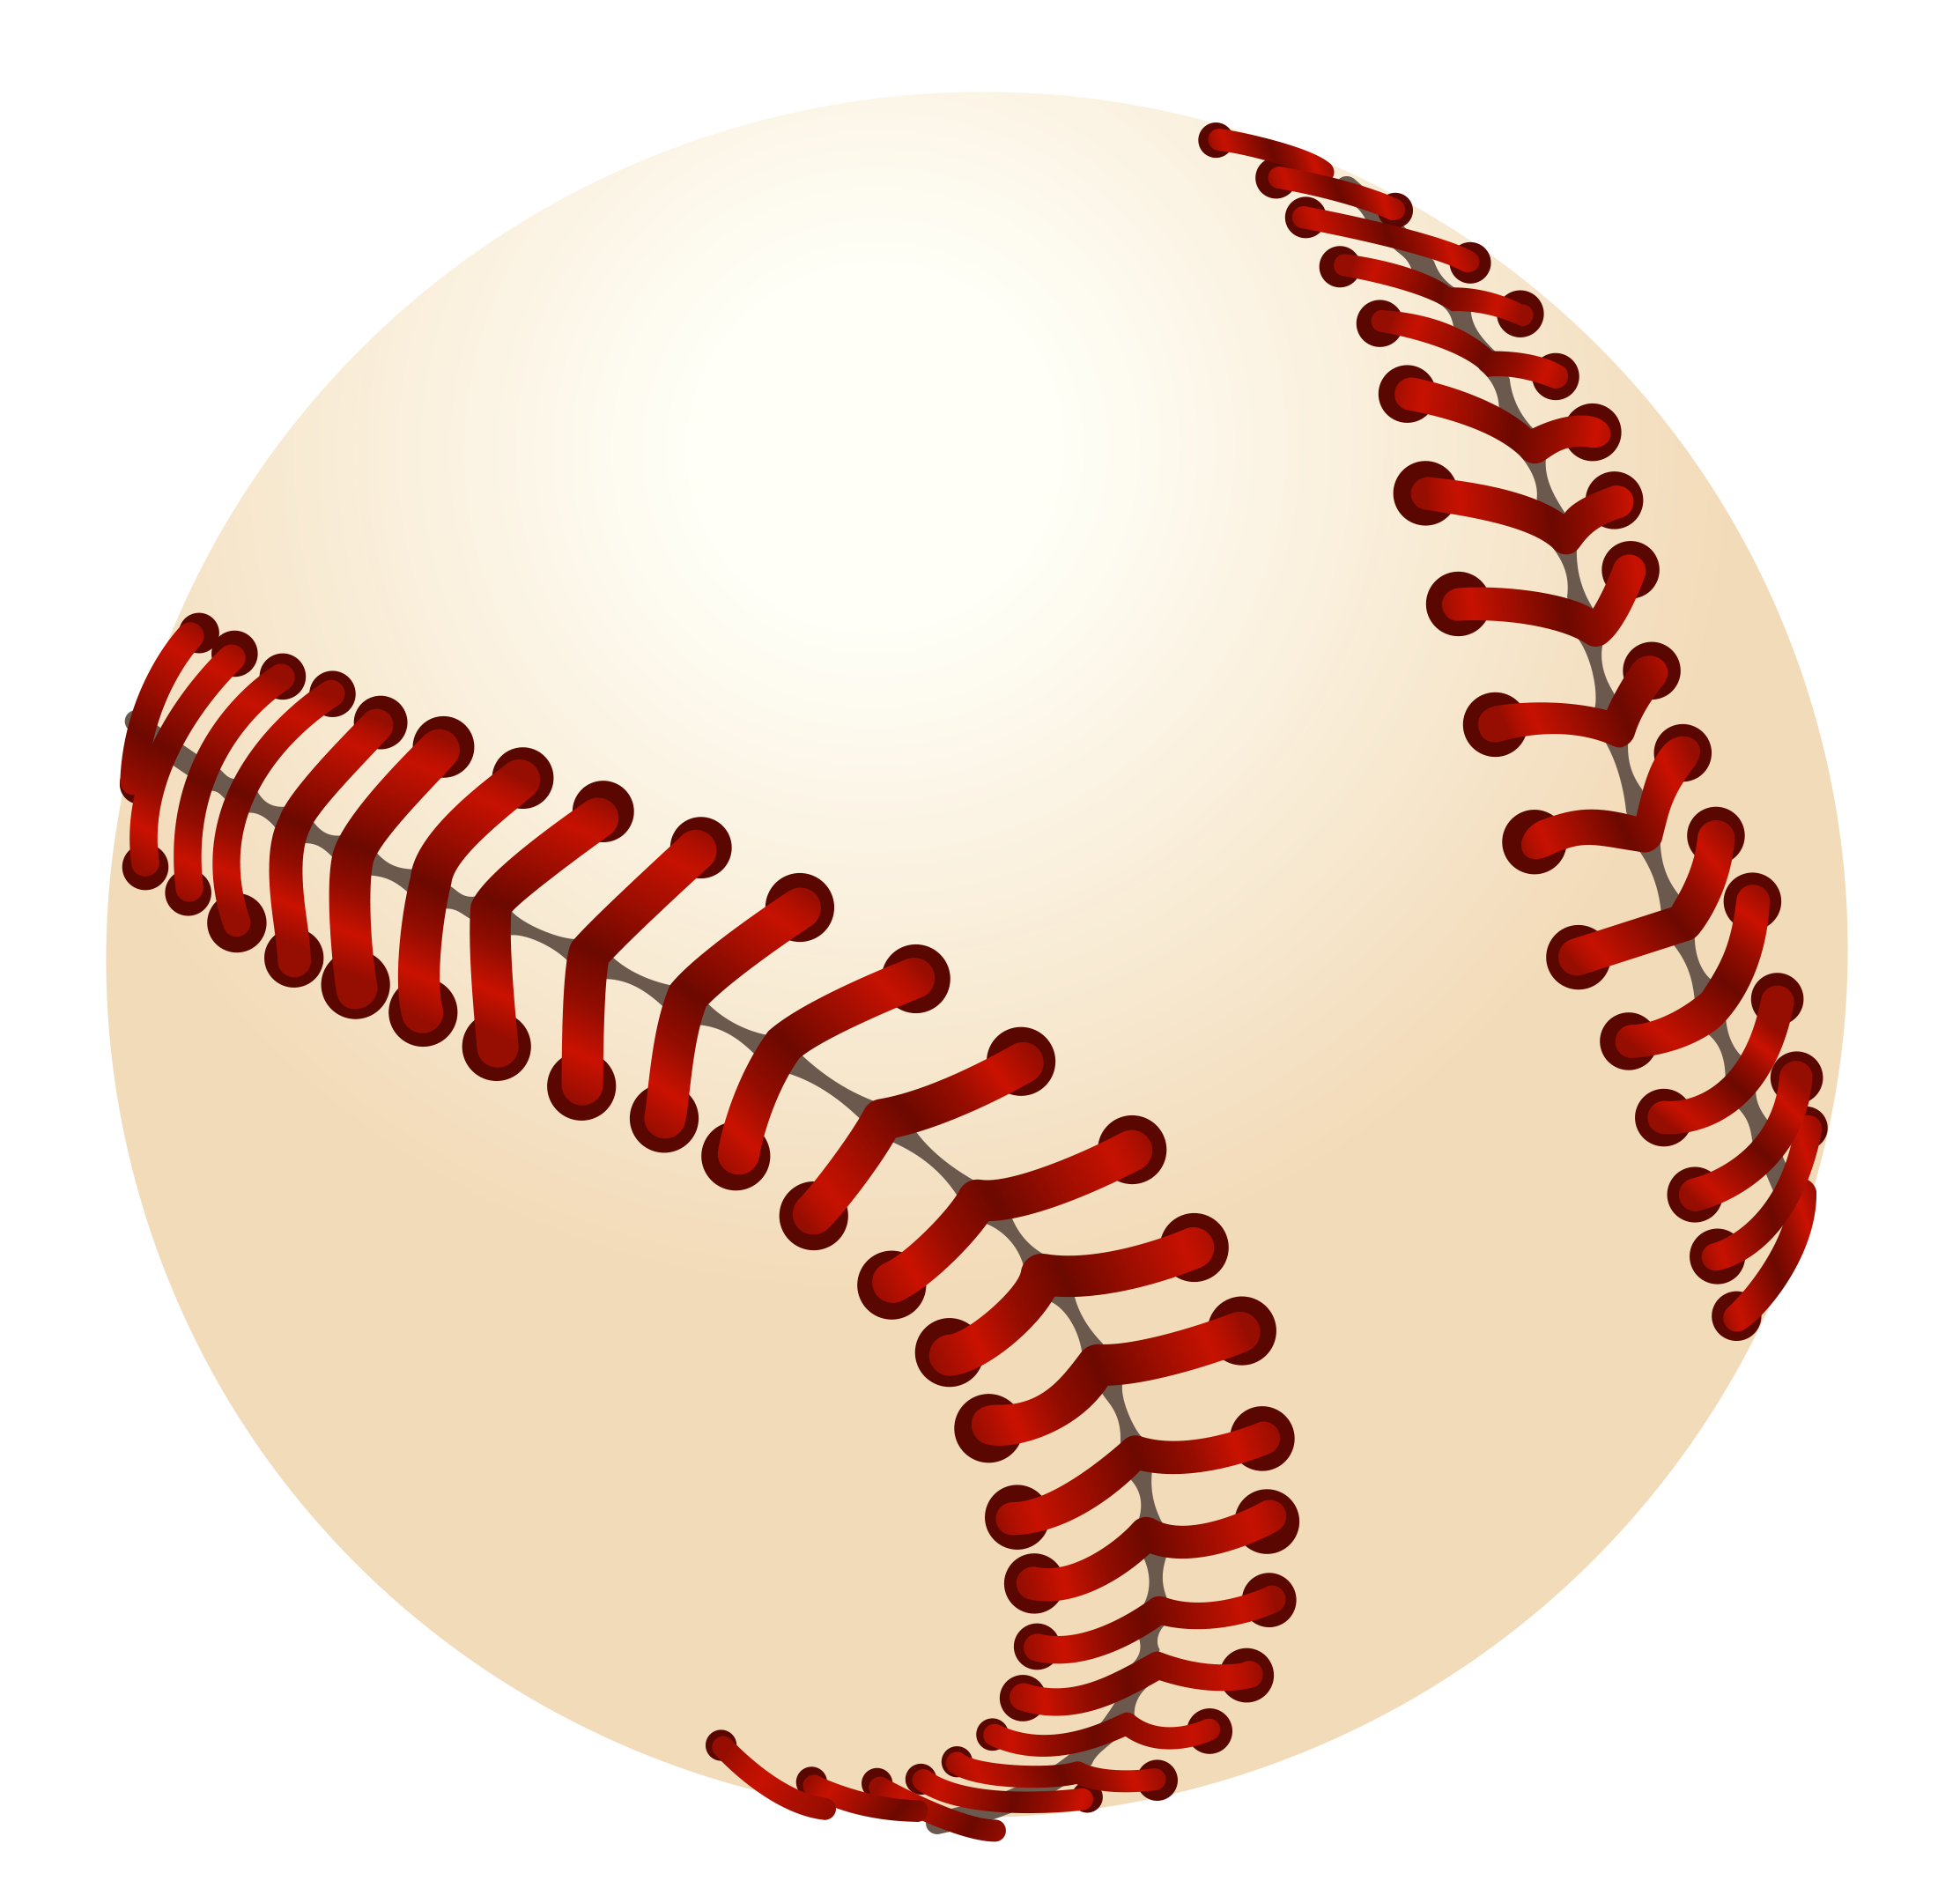 Baseball ball clipart clip art freeuse 28+ Collection of Baseball Ball Clipart Png | High quality, free ... clip art freeuse